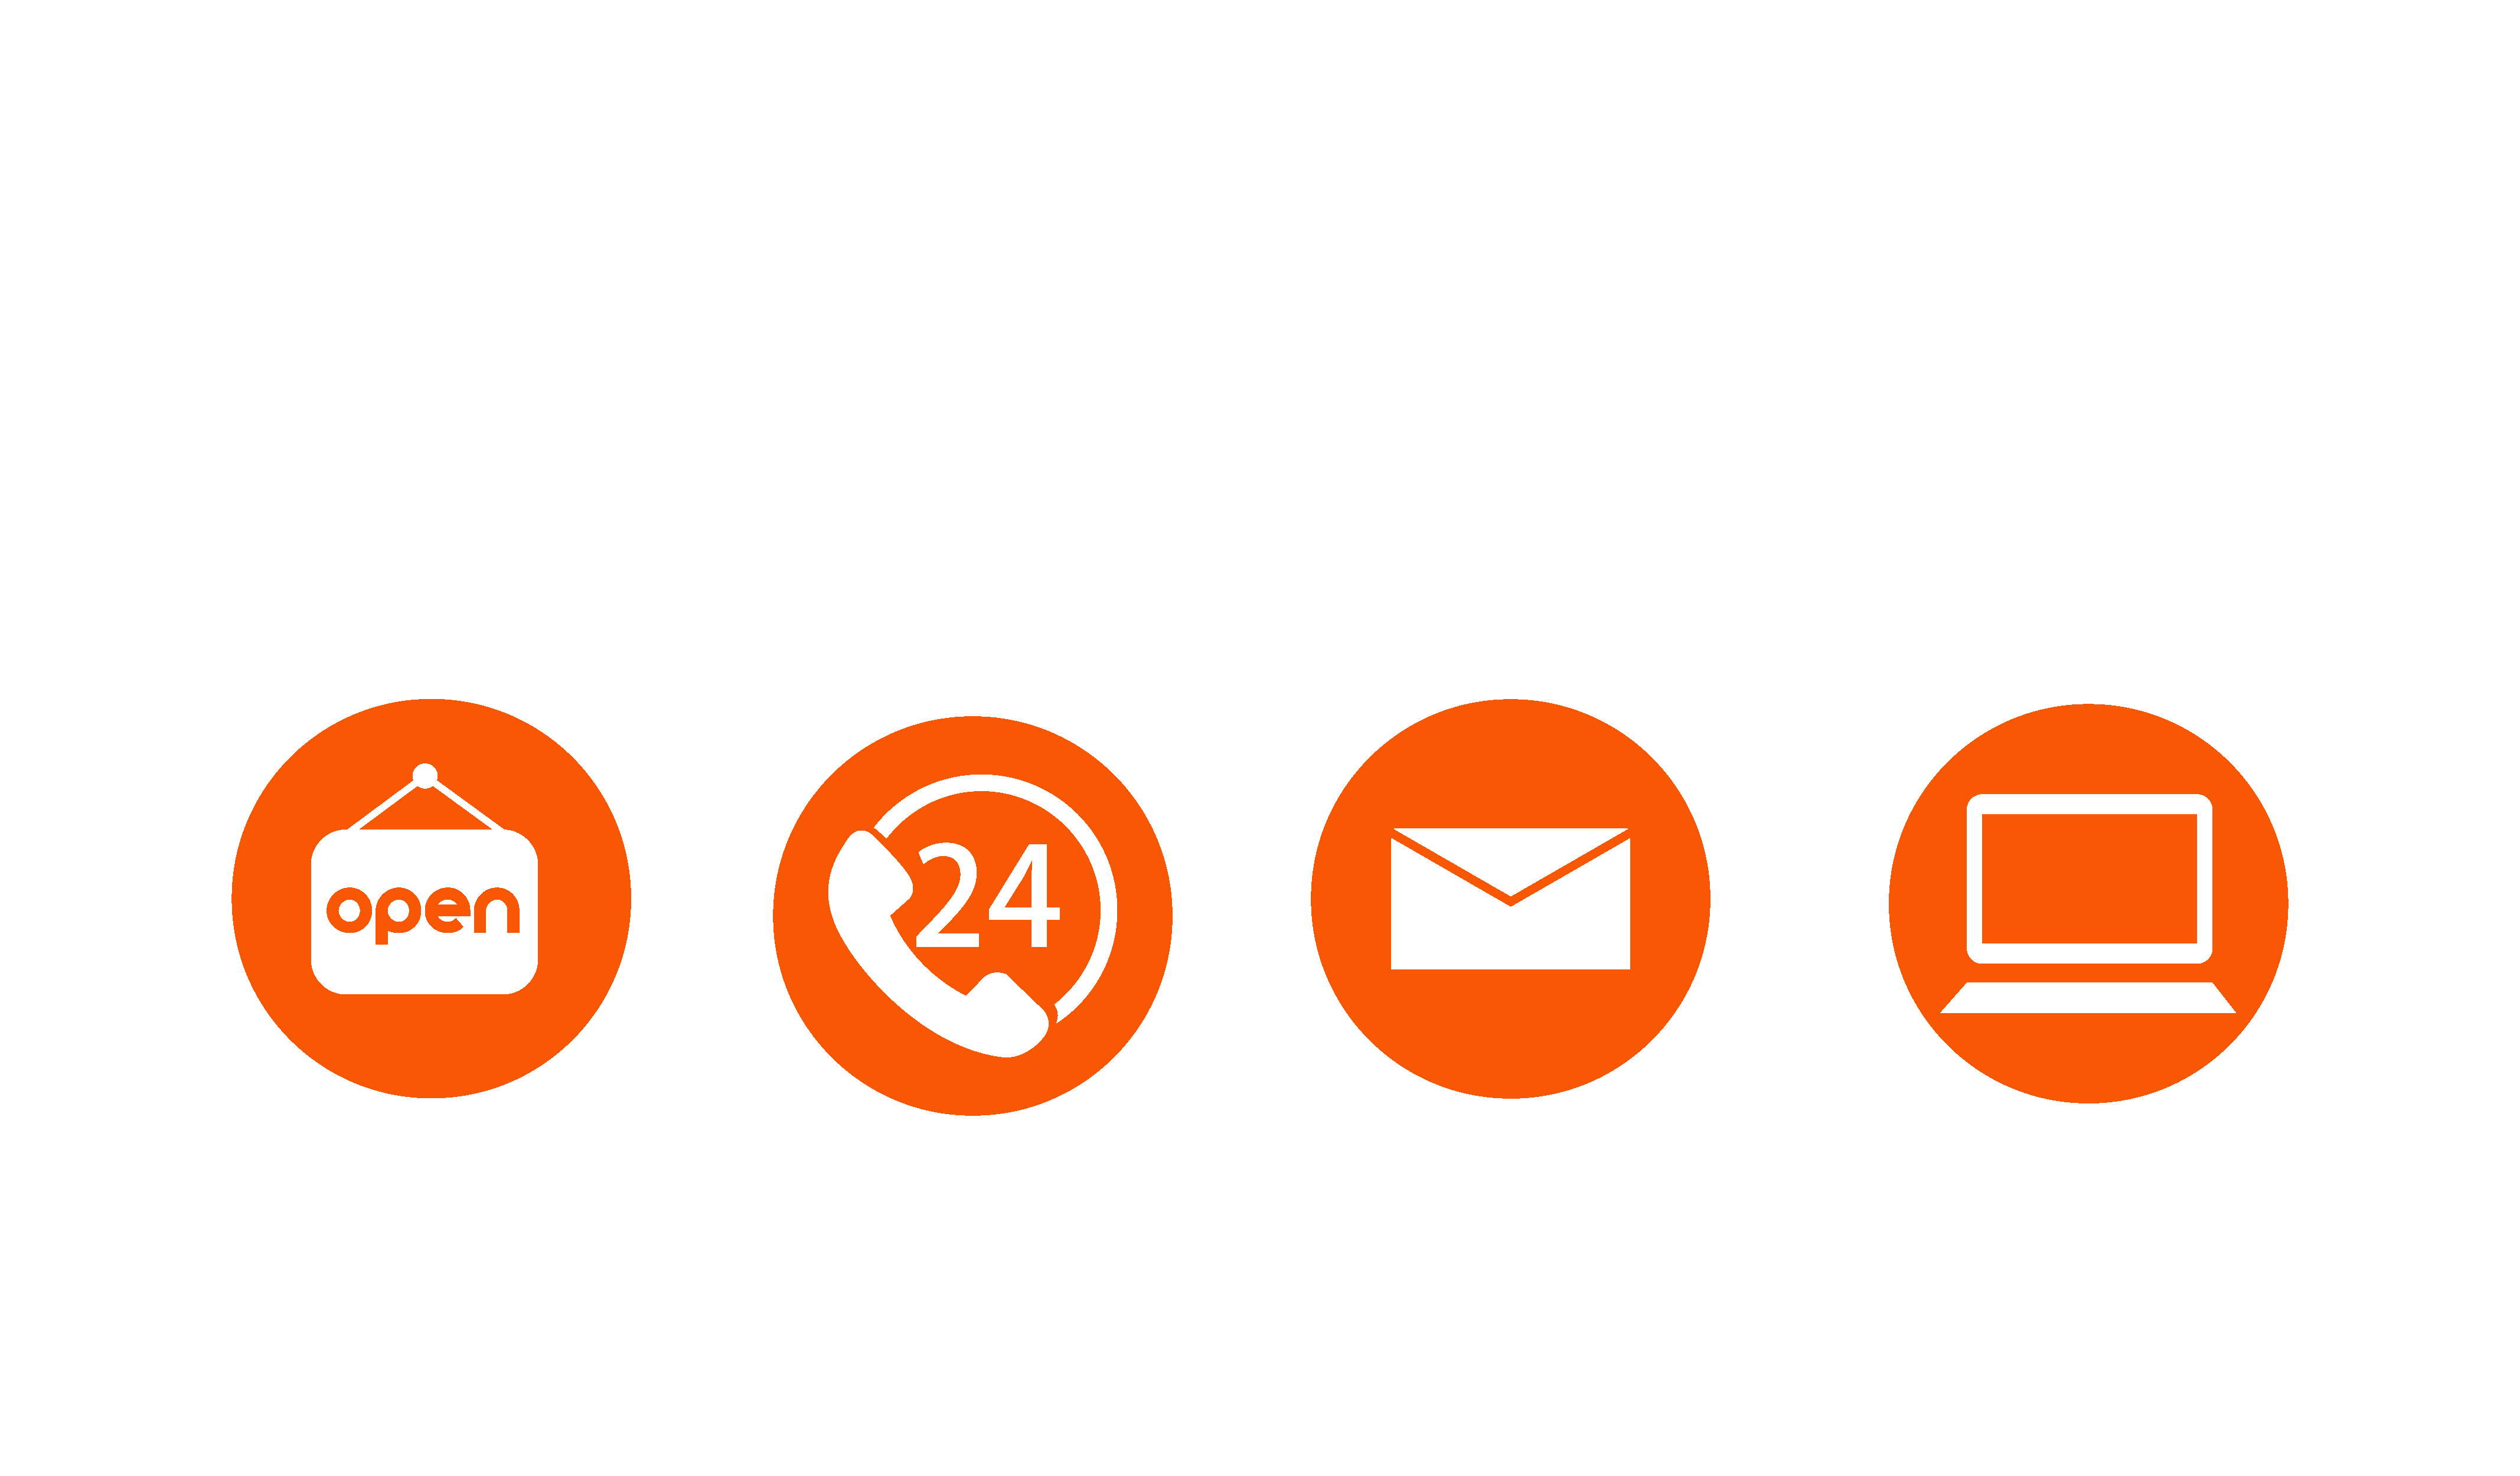 https://mienergy.coop/sites/mienergy/files/revslider/image/Payment%20icons%20-%20orange-01.jpg